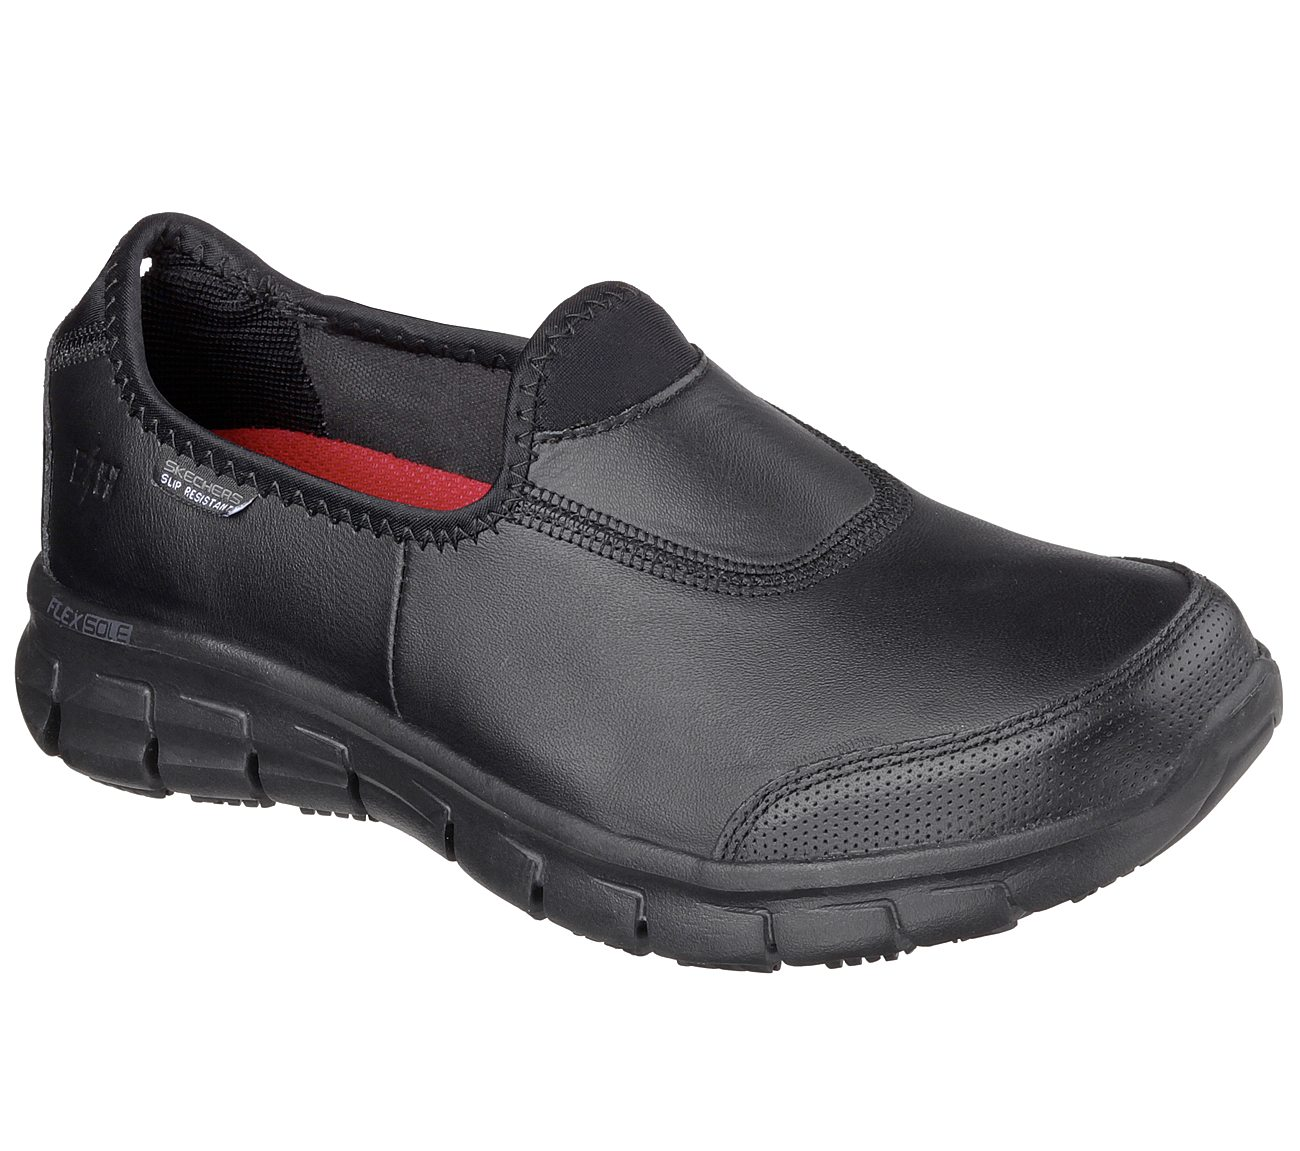 skechers womens work shoes